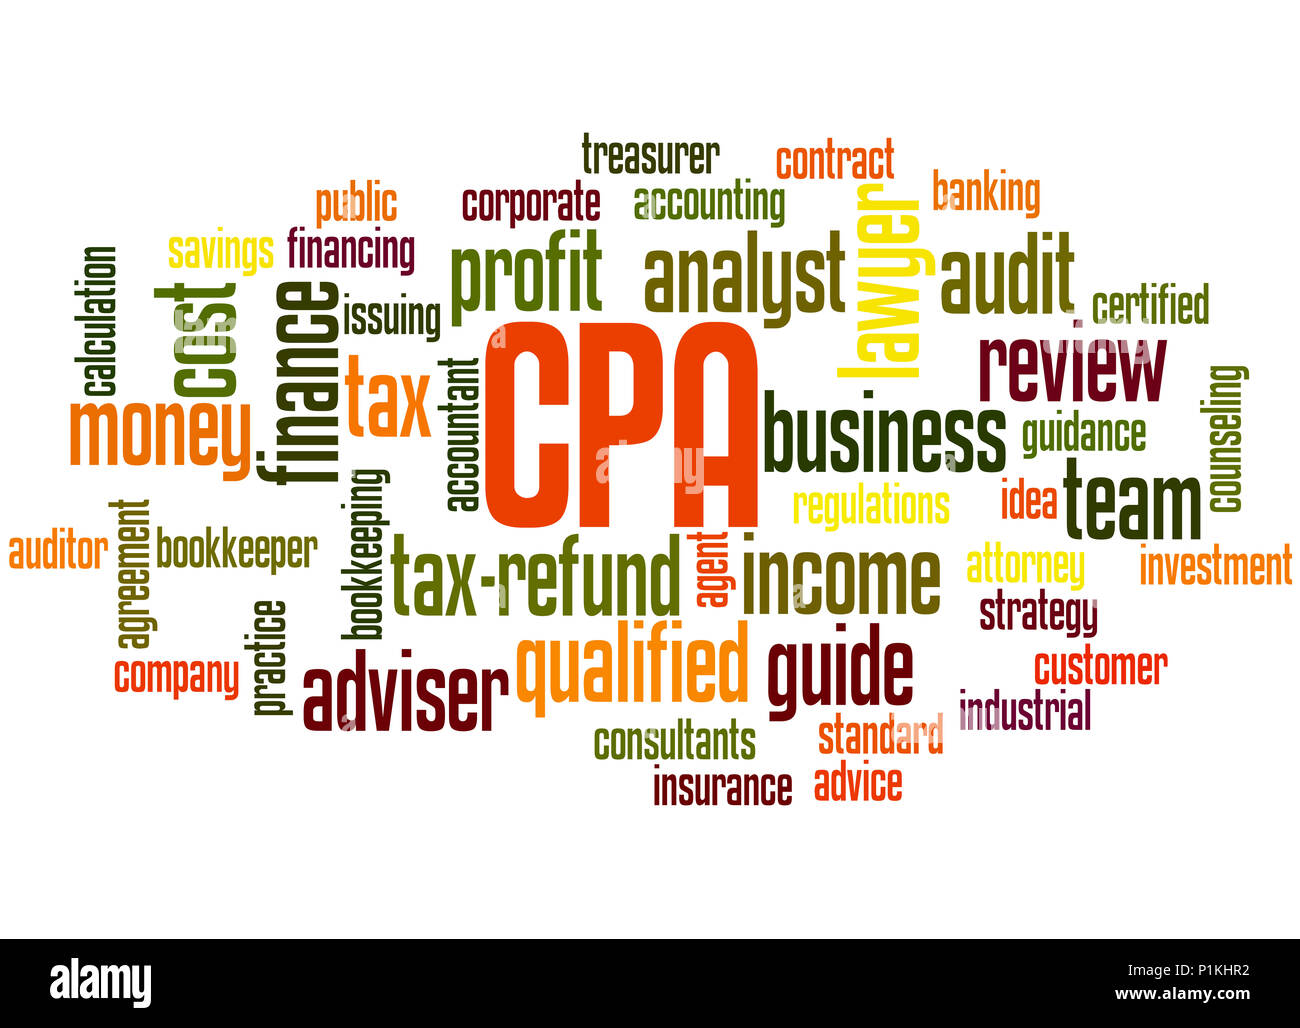 CPA - Certified Public Accountant, word cloud concept on white background. - Stock Image